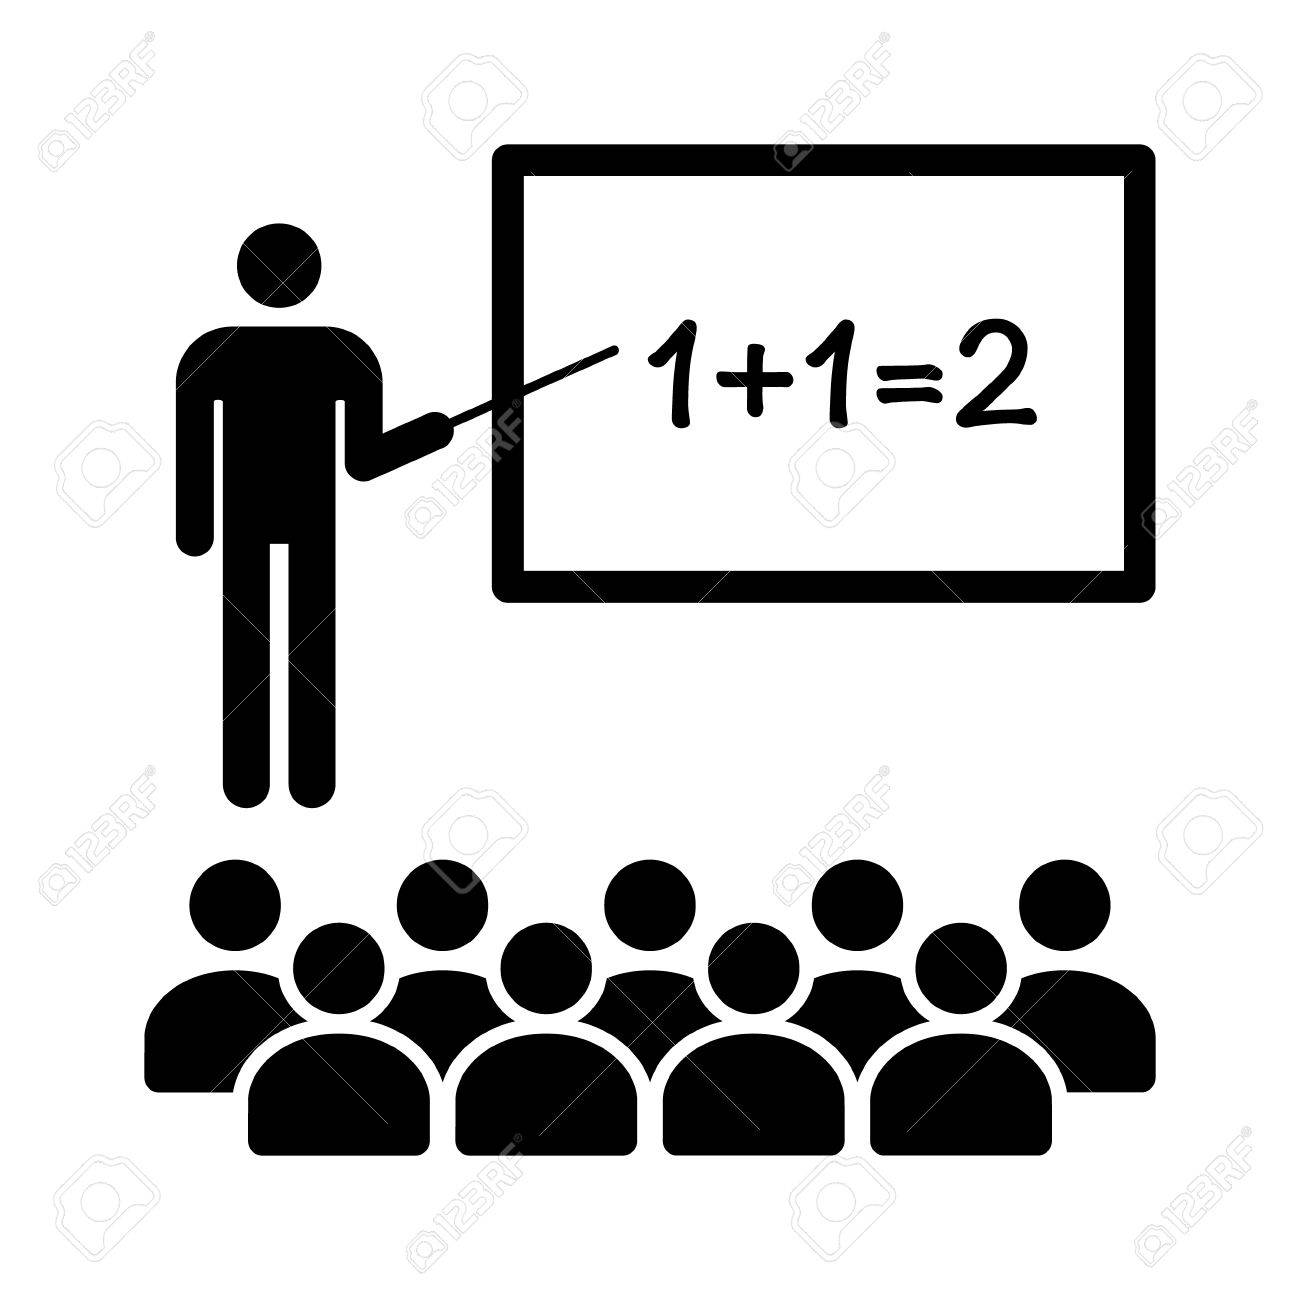 math teacher with stick in classroom with students flat icon